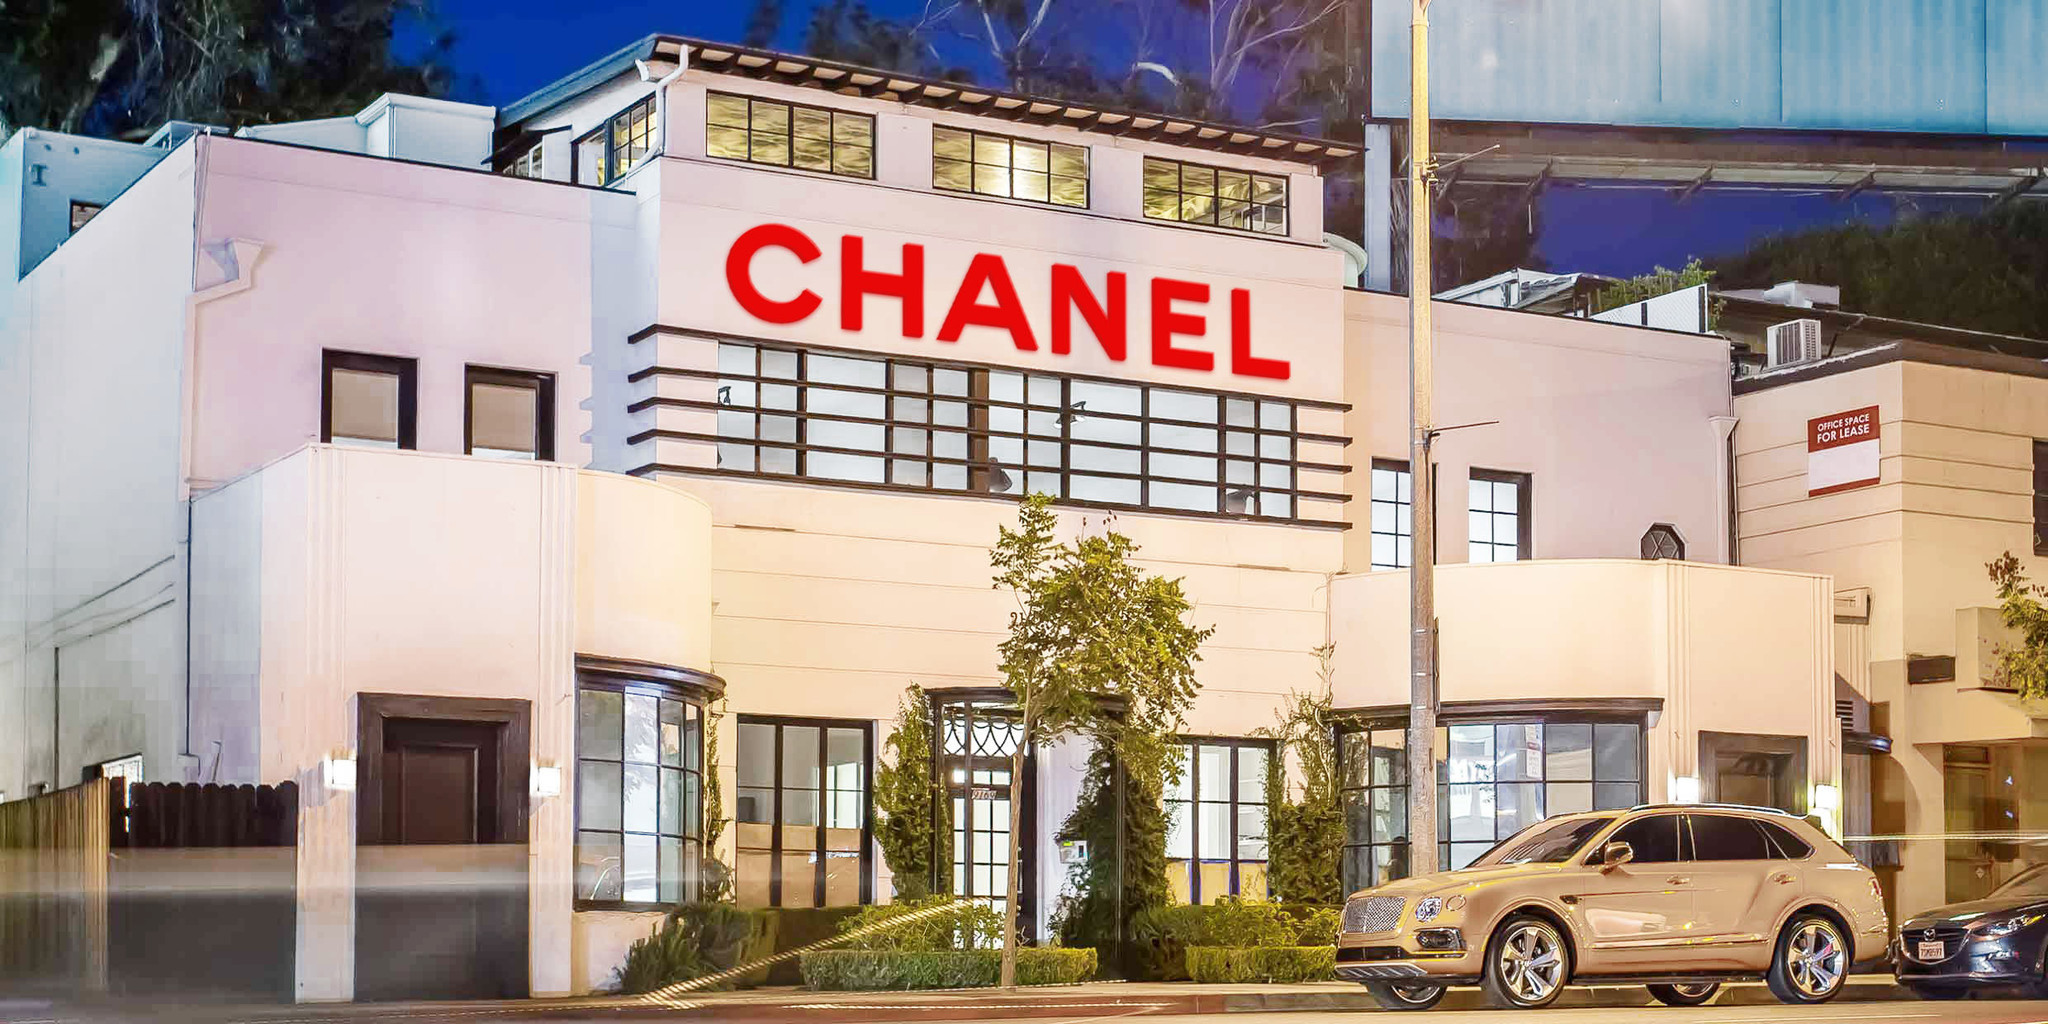 A rendering of Chanel beauty house pop up in West Hollywood. Credit: Chanel